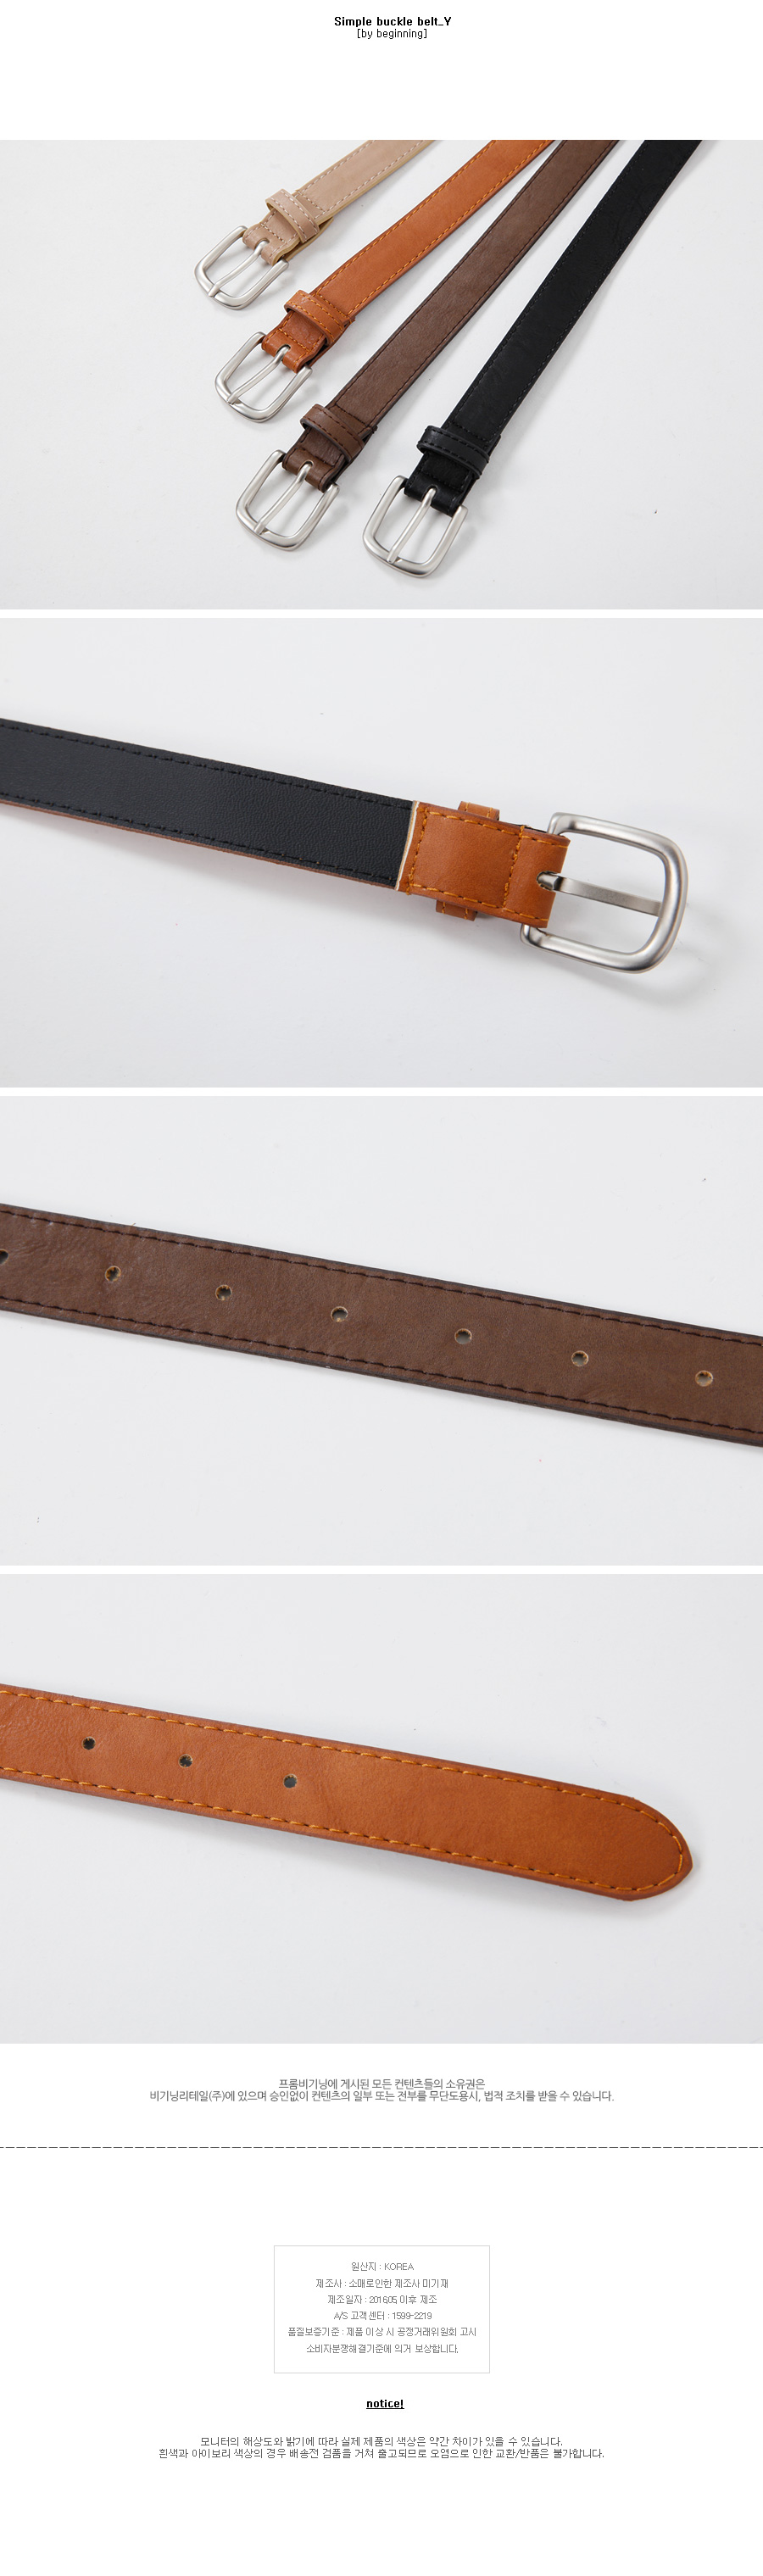 Simple buckle belt_Y (size : one)